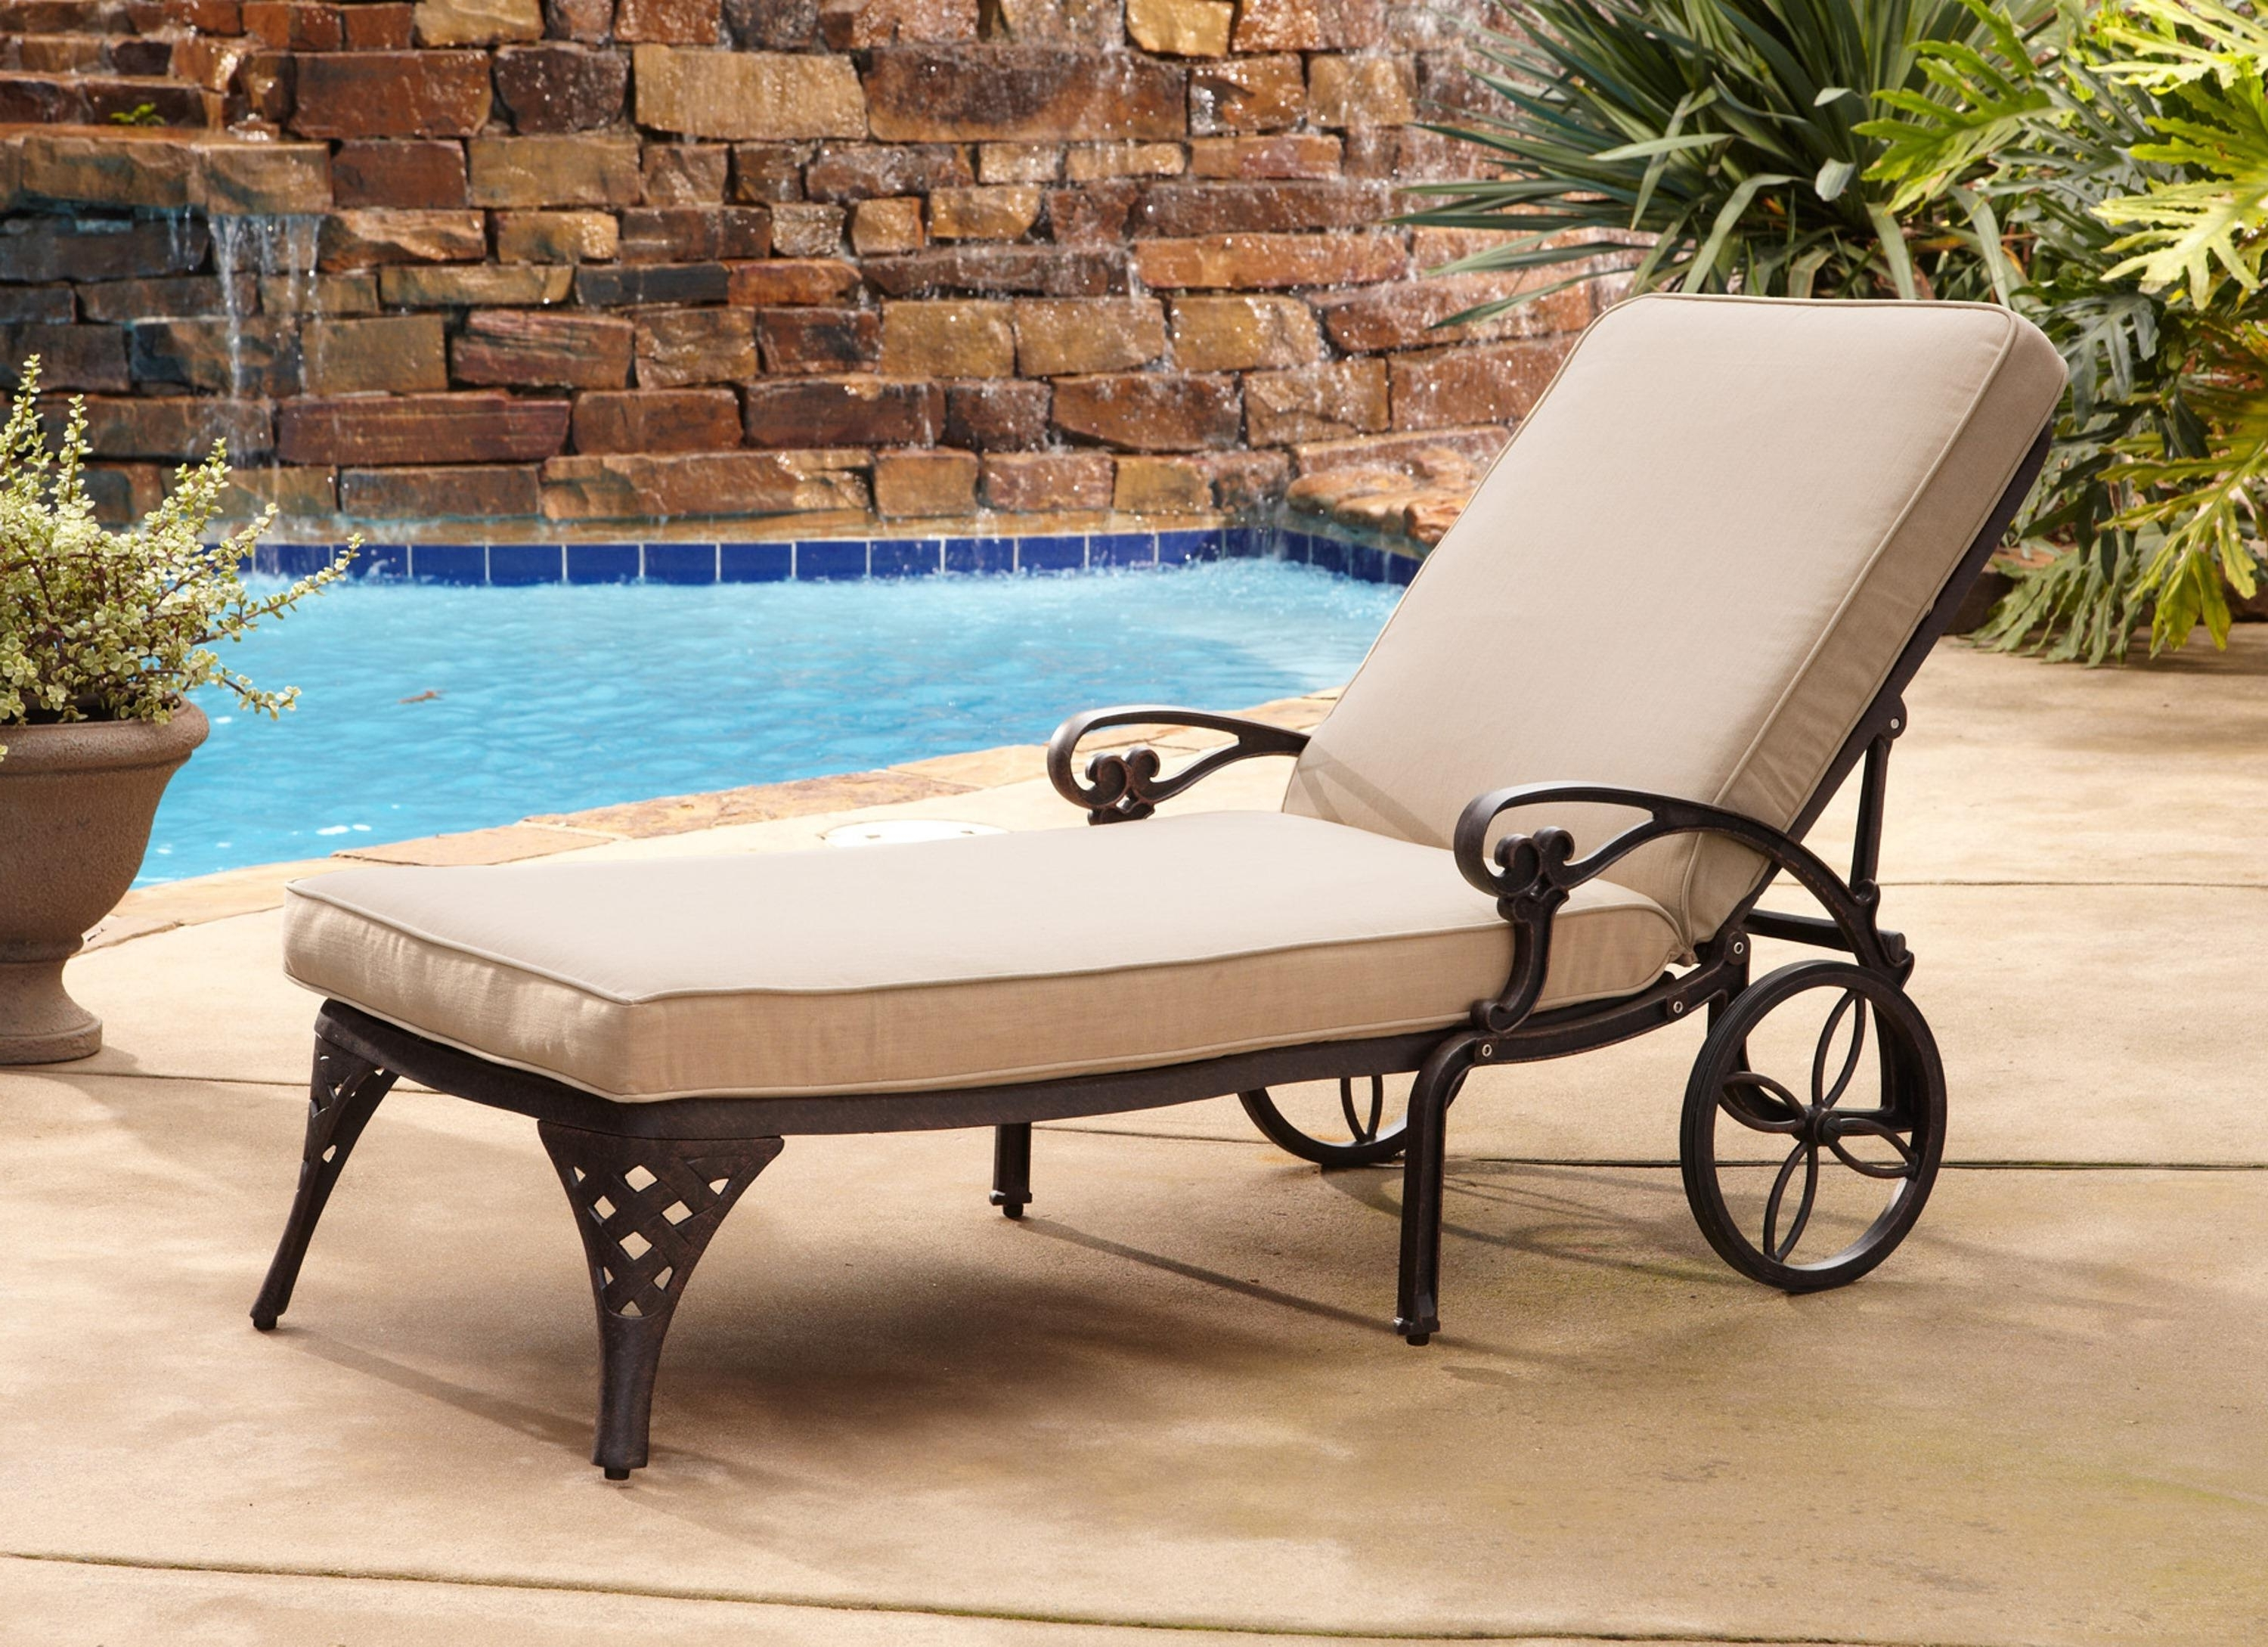 Metal Chaise Lounge Chairs With Wheels • Lounge Chairs Ideas Pertaining To Most Popular Chaise Lounge Chairs In Toronto (View 9 of 15)